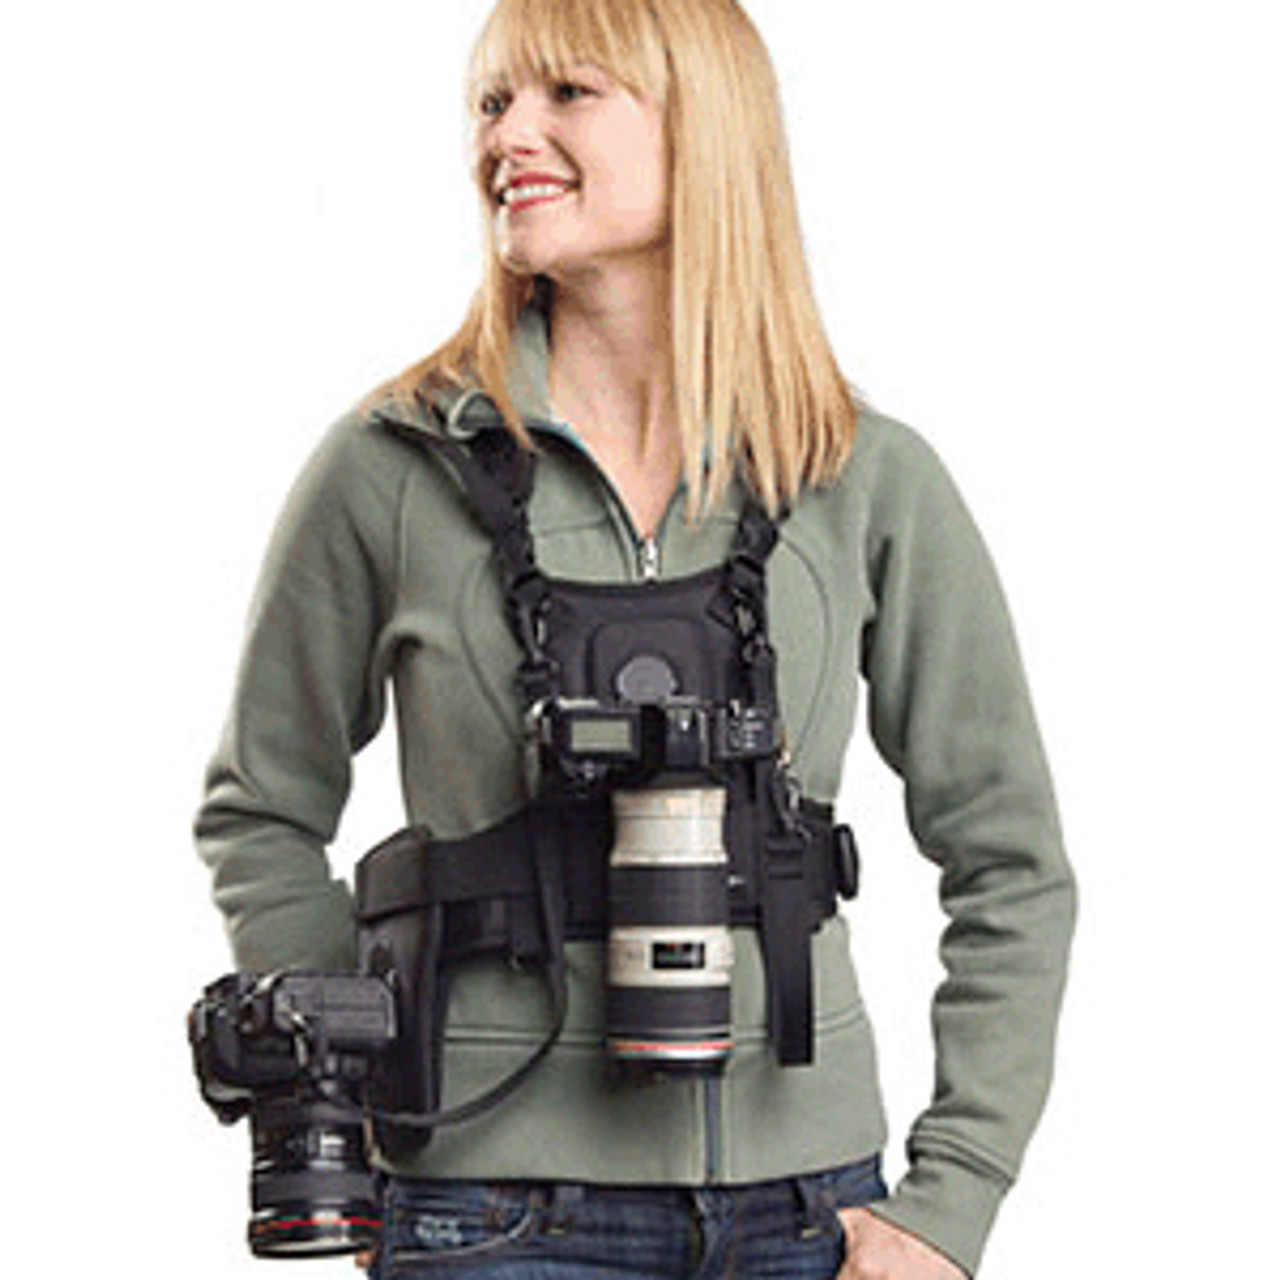 Cotton Carrier Vest 1/2 Camera with Side Holster